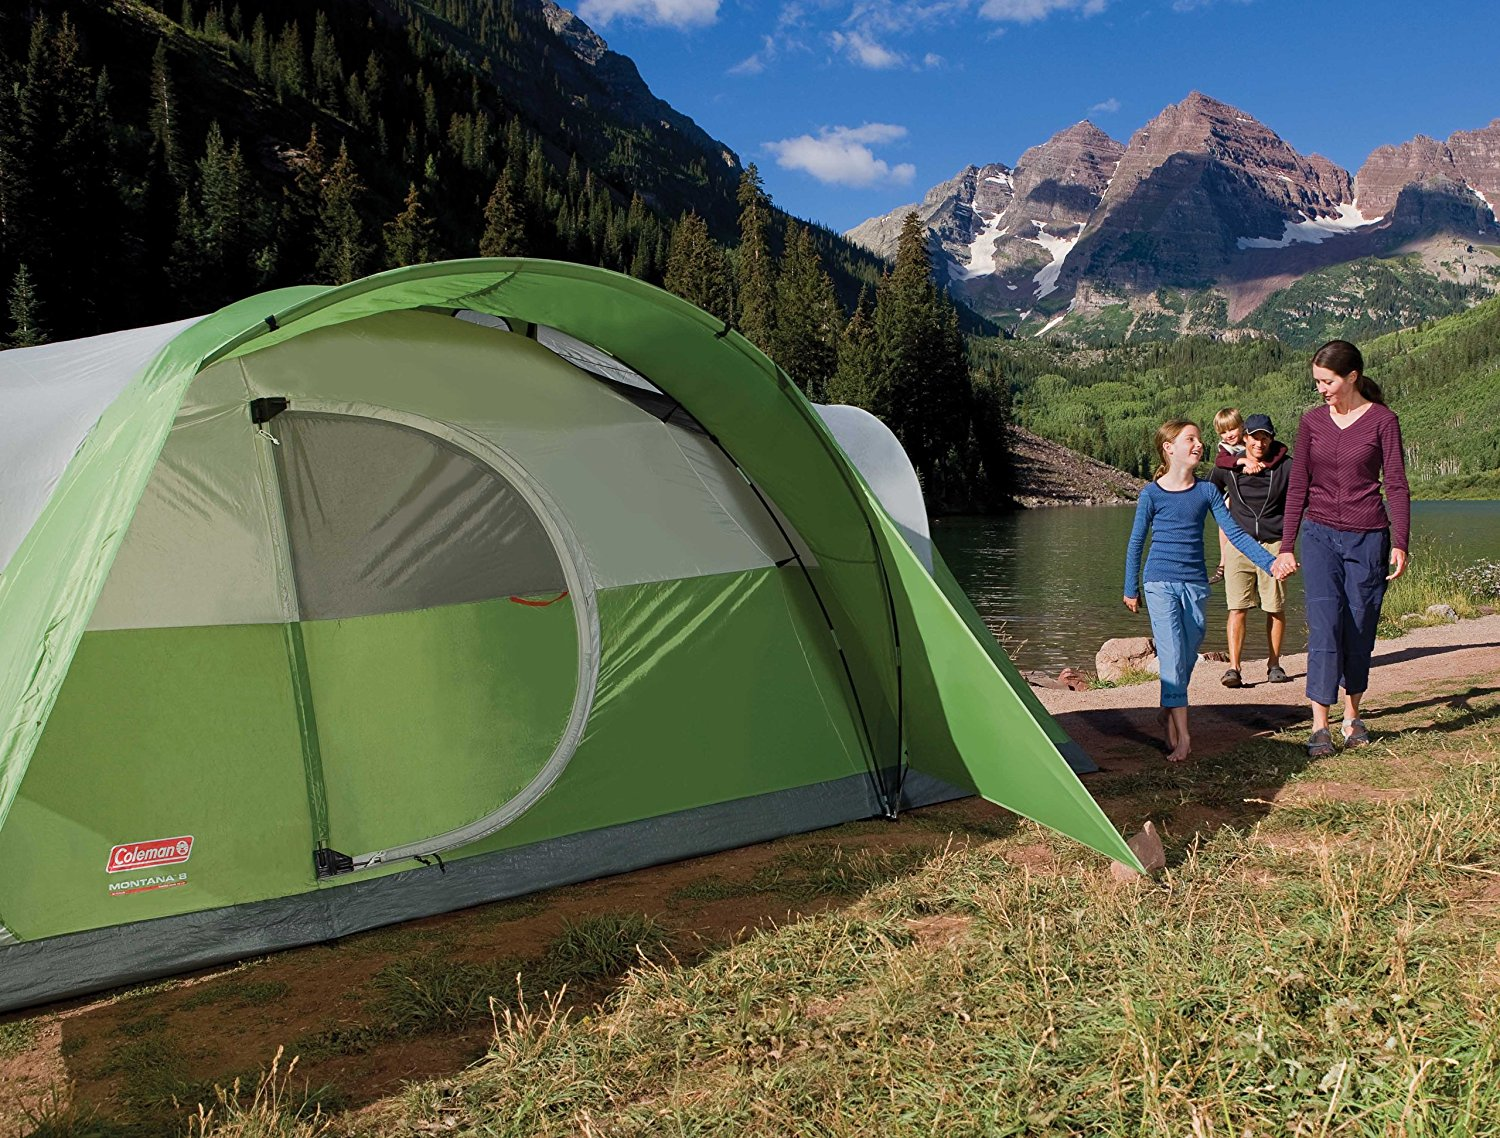 Best 8 Person Tent For Group Or Family Camping 8 Person